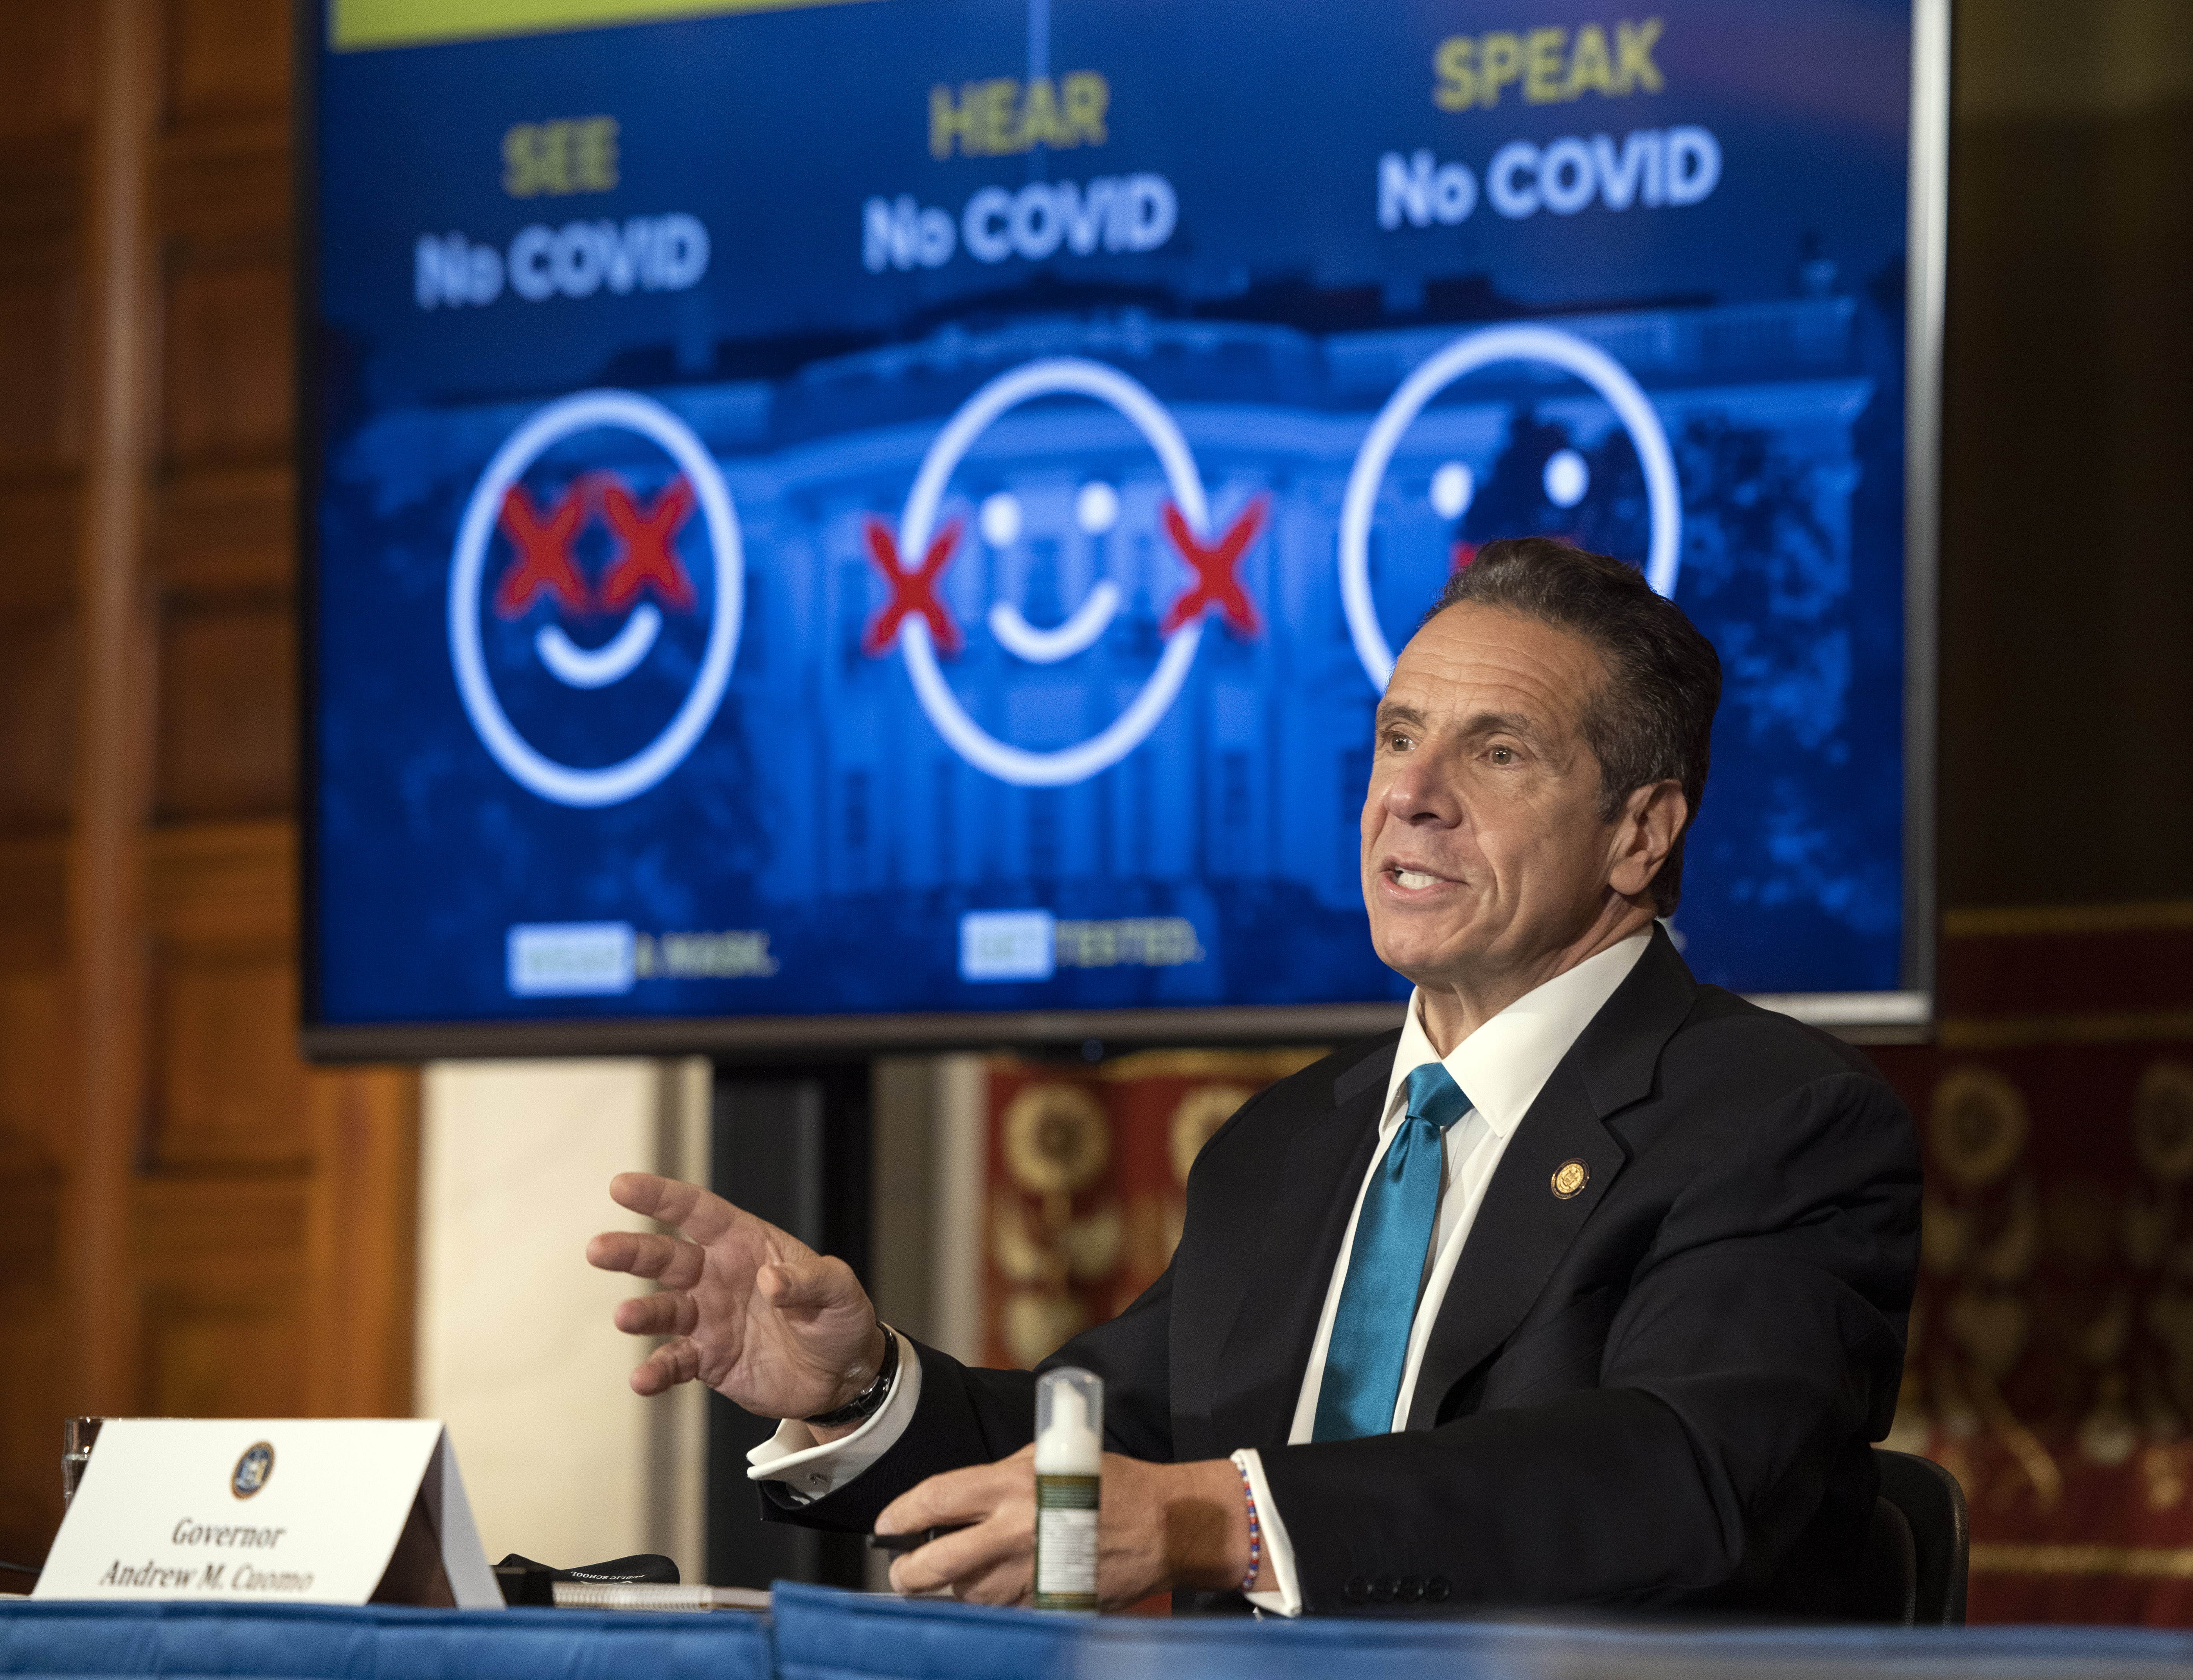 Gov. Cuomo Orders New Restrictions to Fend off Second Wave of COVID